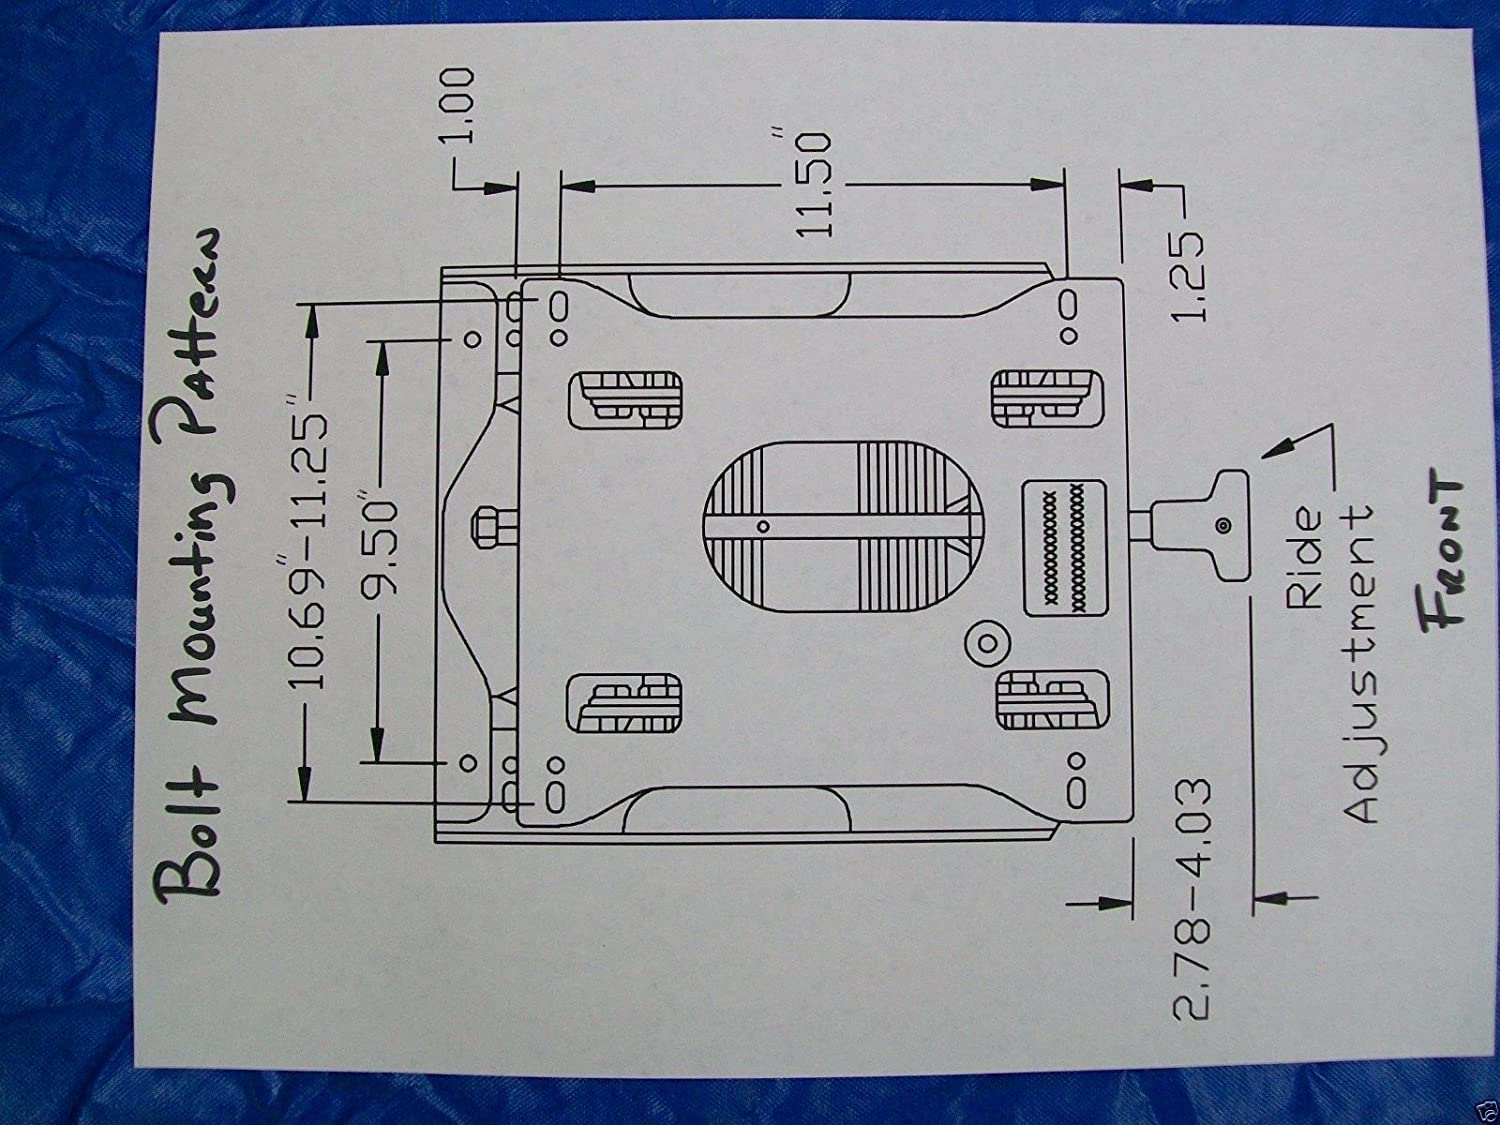 D 1500 Kubota Engine Diagram Great Installation Of Wiring Diesel Parts Library Rh 7 Webseiten Archiv De 2203